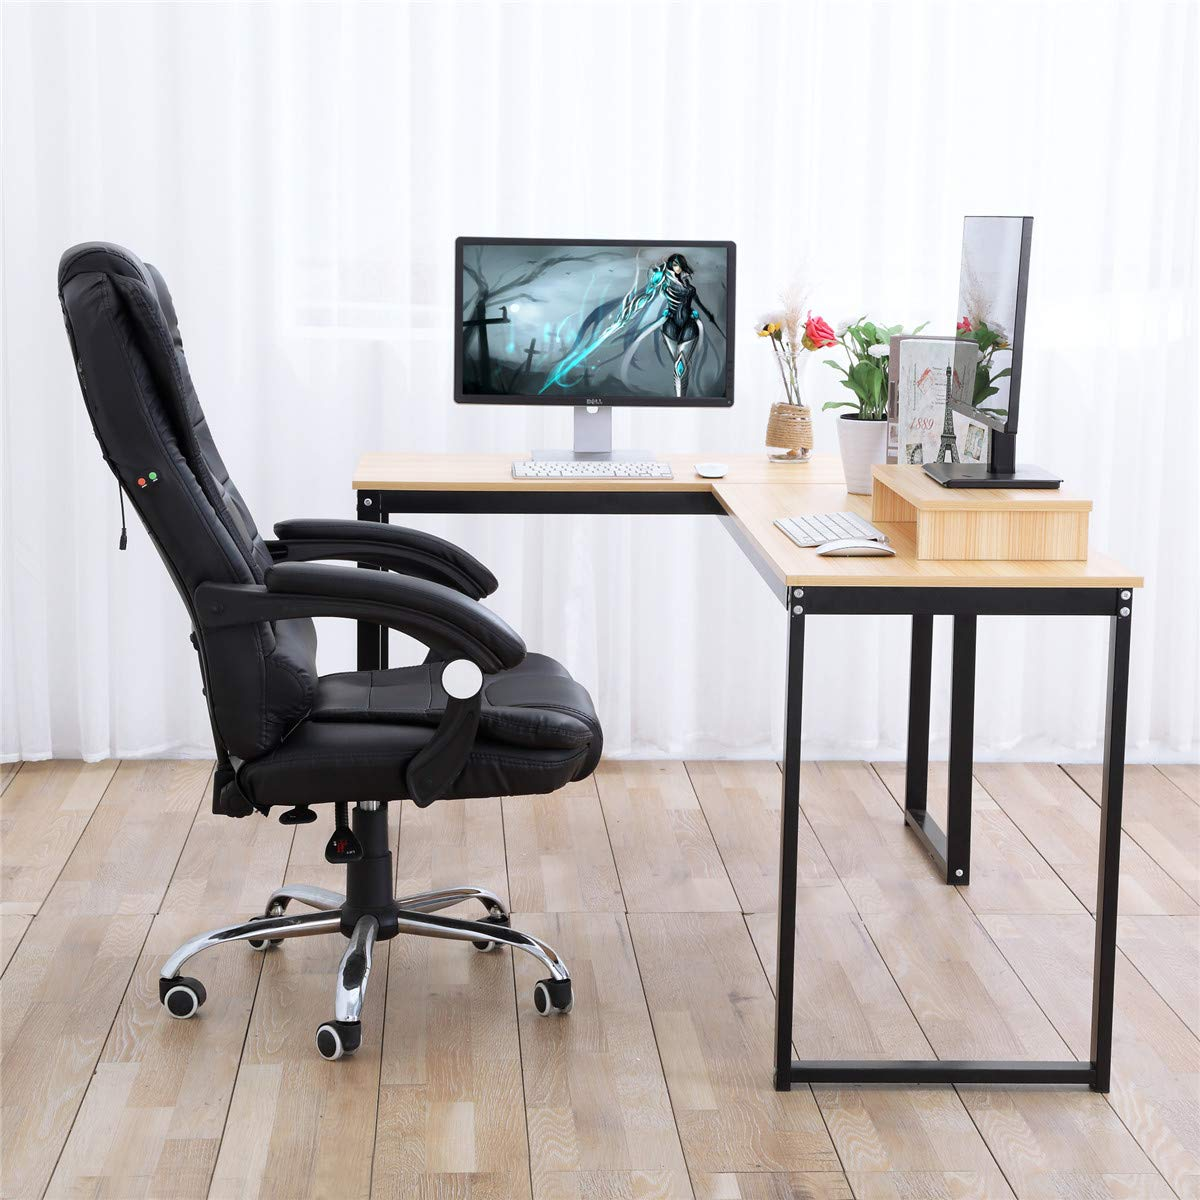 Wood /& Metal Free Monitor Stand Computer Desk Beech Wood Grain ZCH L-Shaped Large Corner PC Laptop Study Table Workstation Gaming Writing Desk for Home Office